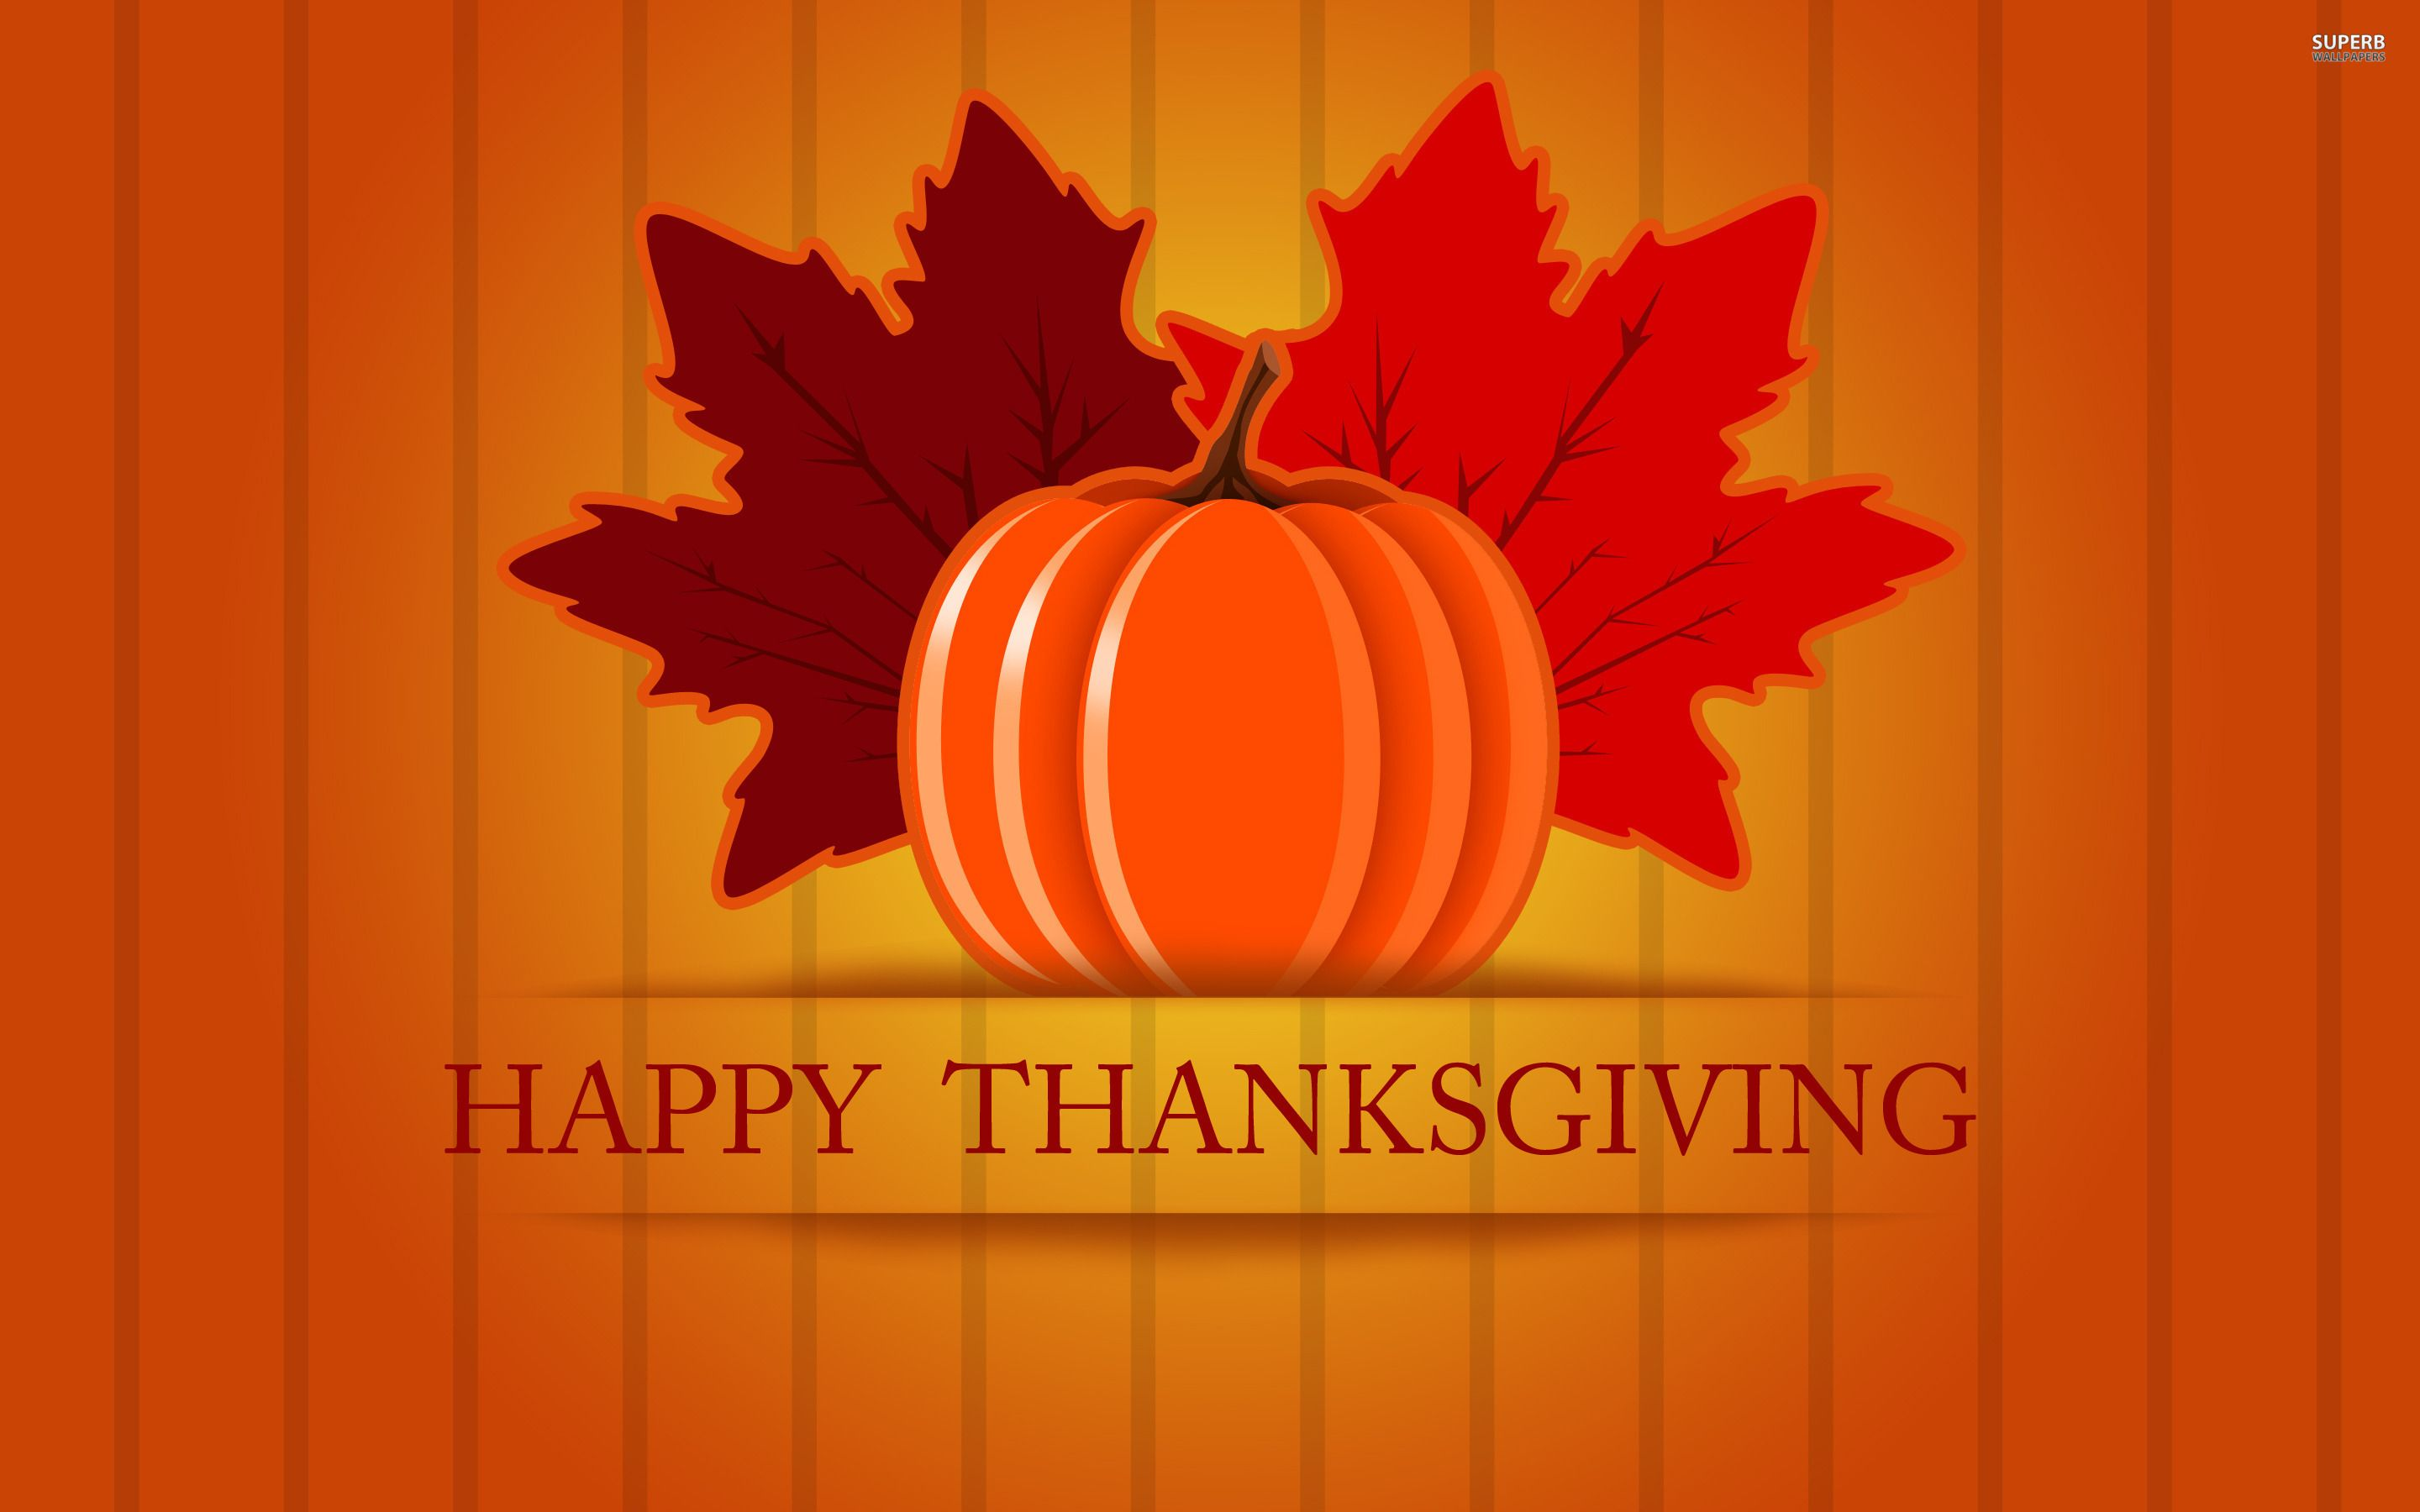 Best free thanksgiving wallpaper ideas on pinterest wallpapers thanksgiving wallpaper live free desktop happy and thanksgiving snoopy wallpapers wallpapers voltagebd Image collections